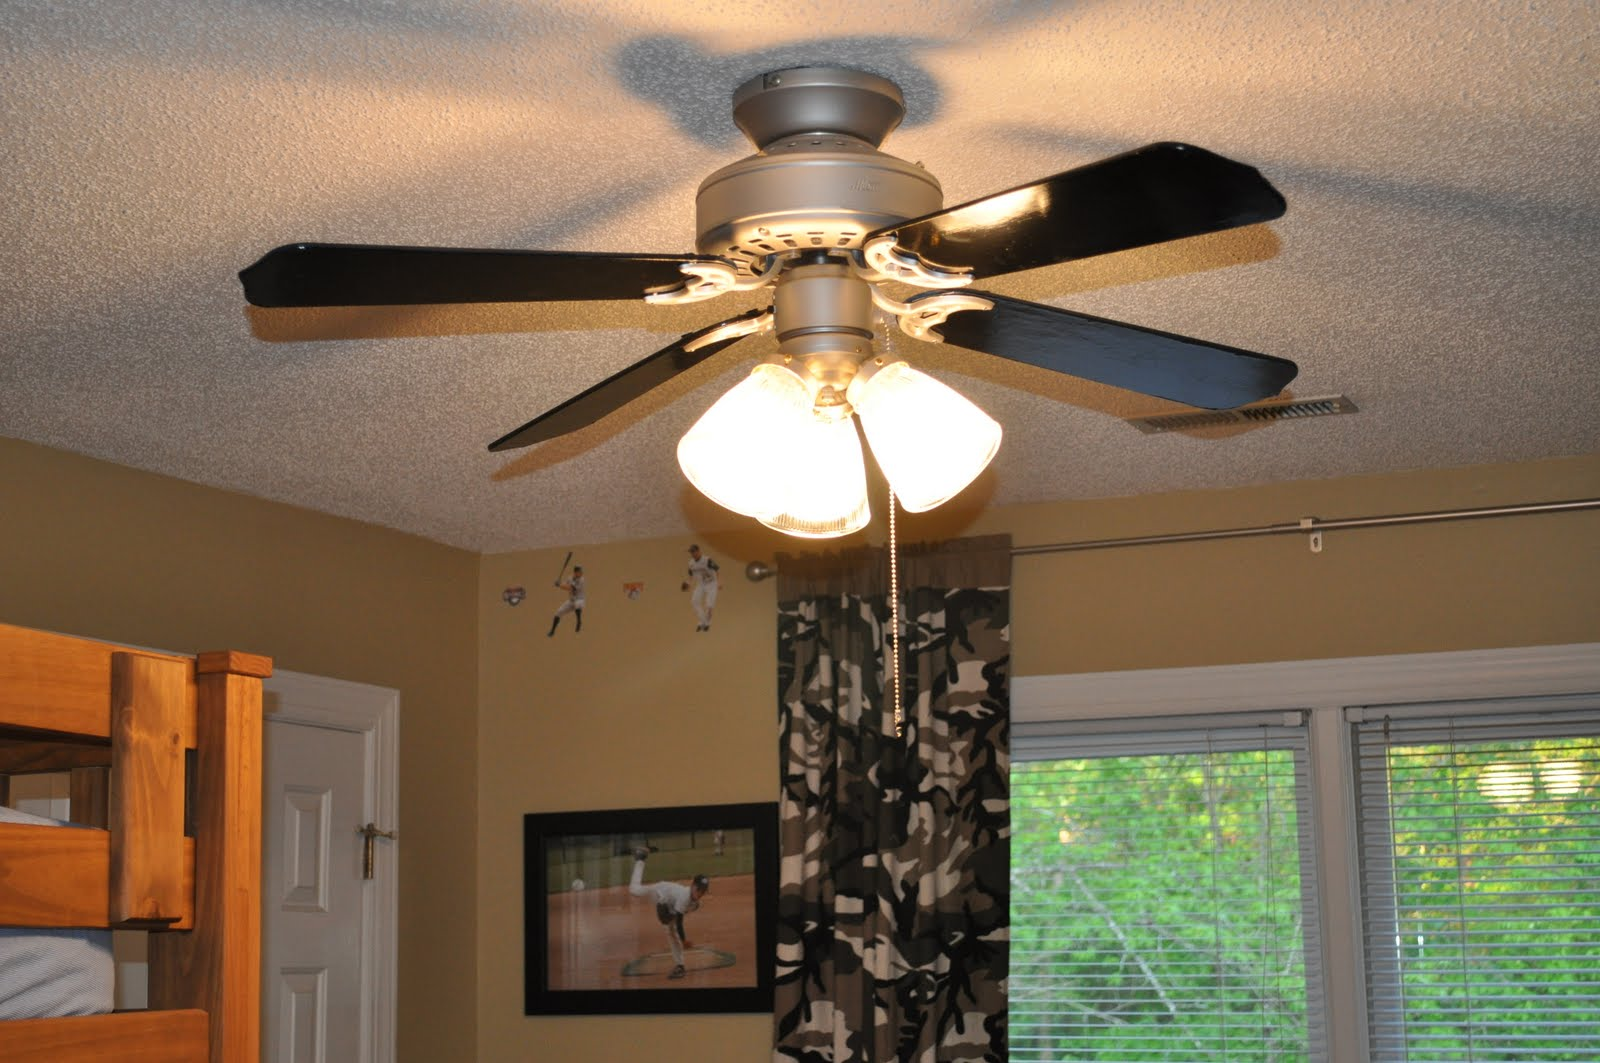 Crayola Ceiling Fan : Crayola ceiling fan concentrations on kids choices